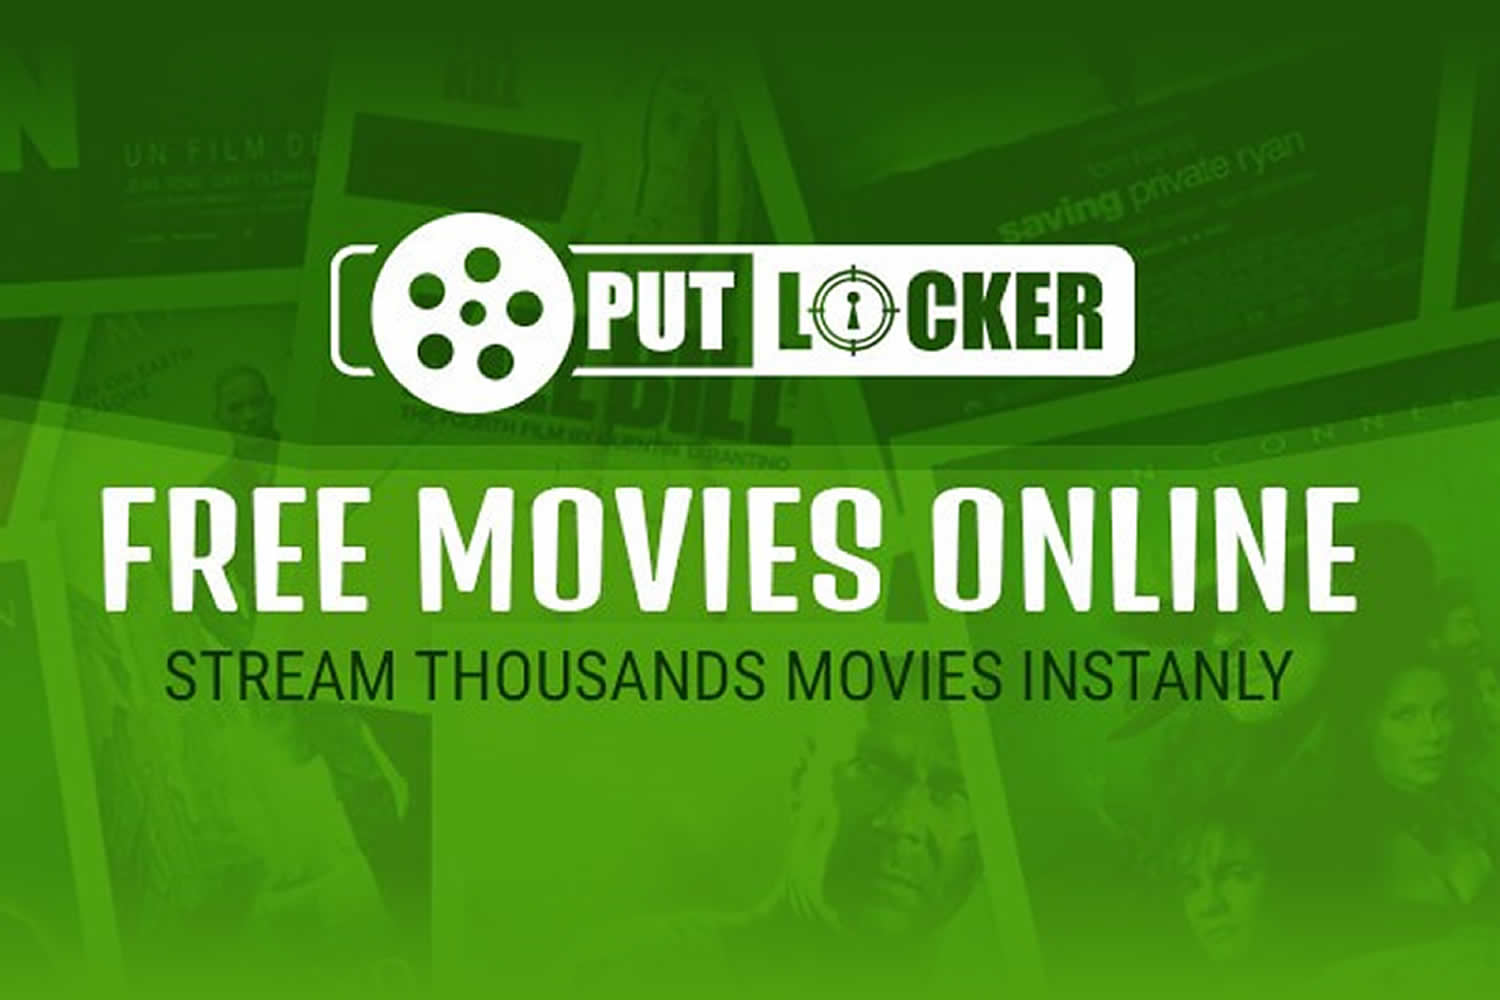 Watch Bombacı Putlocker Movies